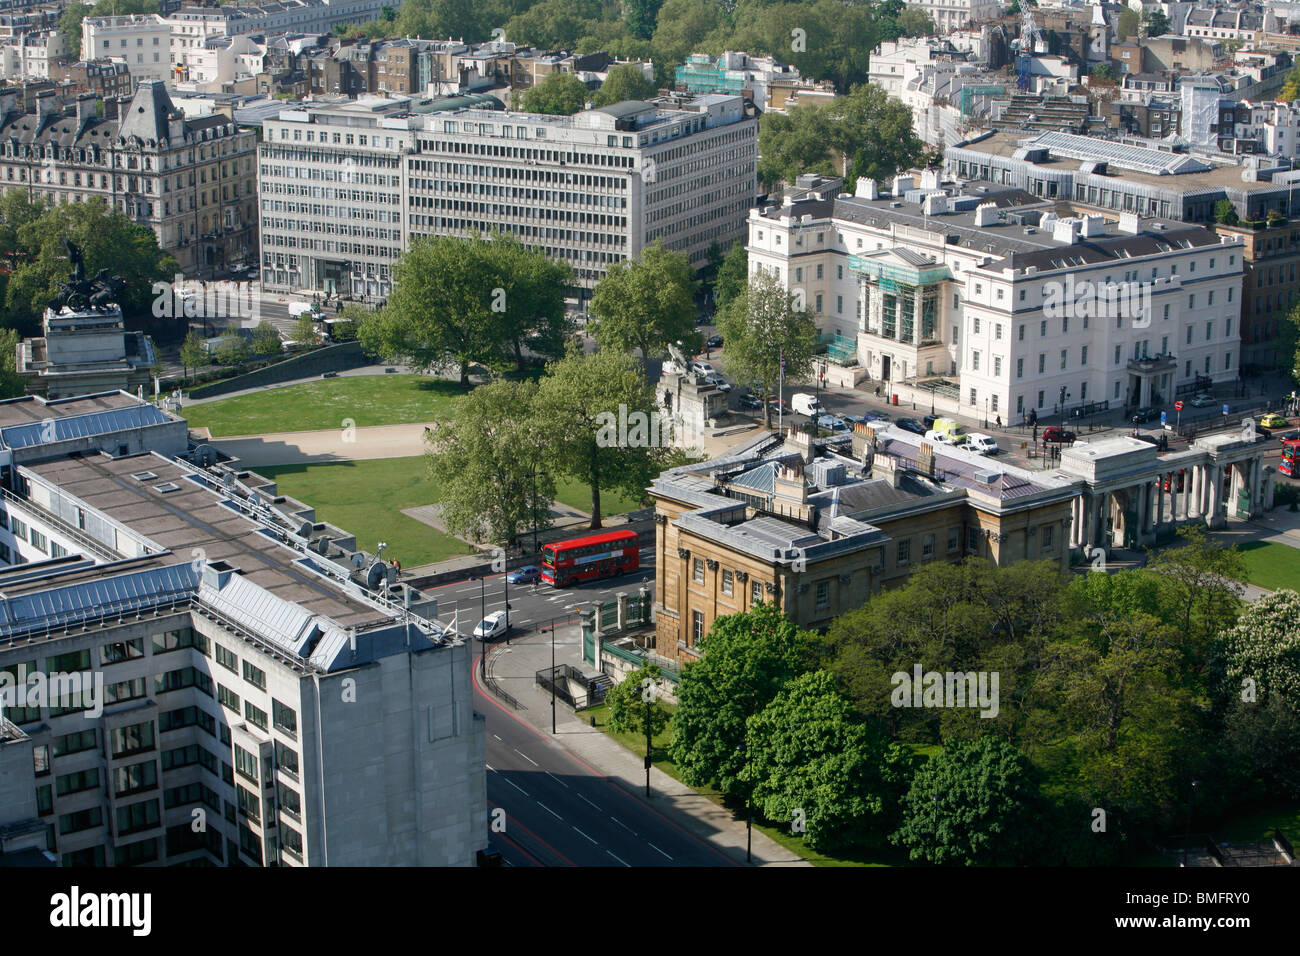 Elevated view of Lanesborough Hotel, Apsley House and Wellington Arch on Hyde Park Corner, Belgravia, London, UK - Stock Image